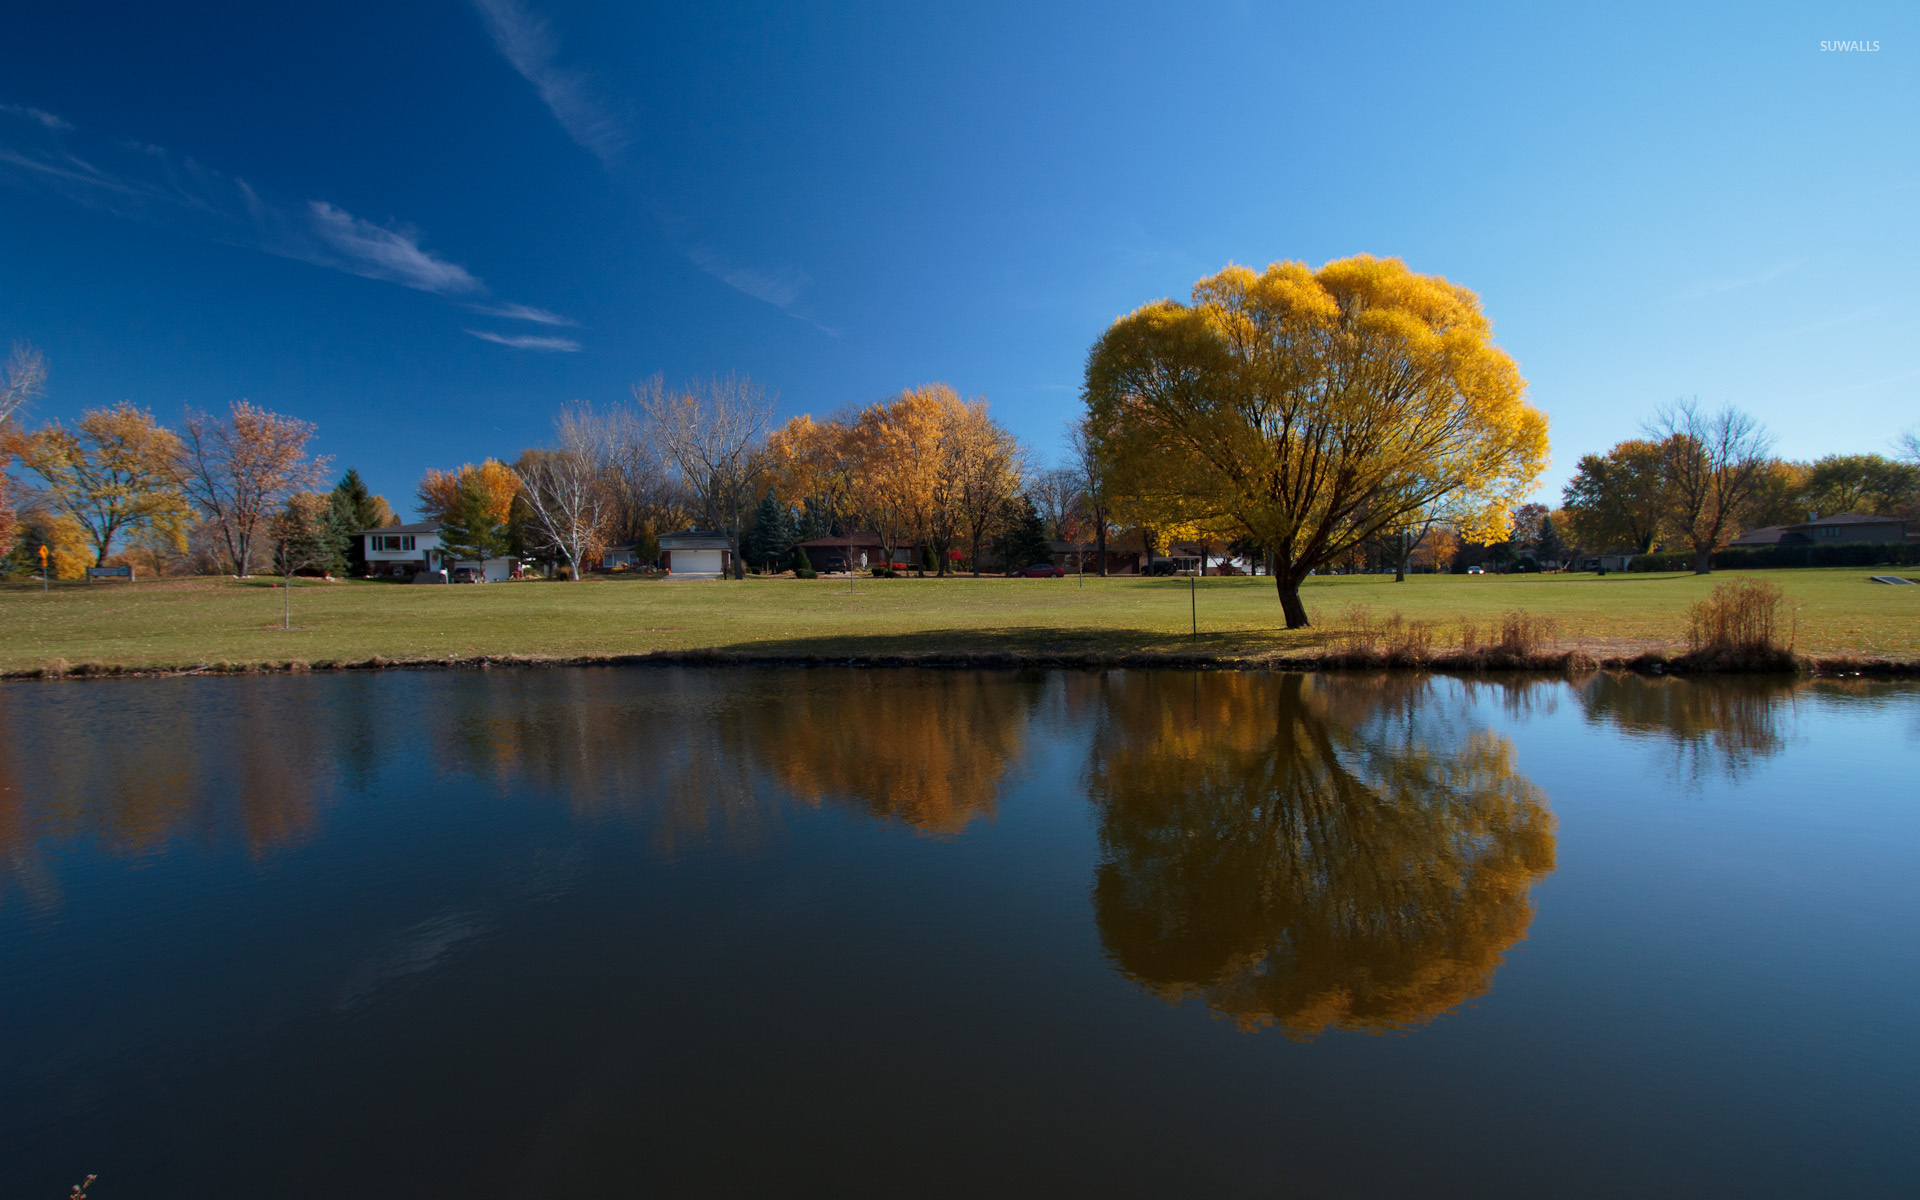 Funny Fall Wallpaper Autumn Trees Reflecting In The Water Wallpaper Nature